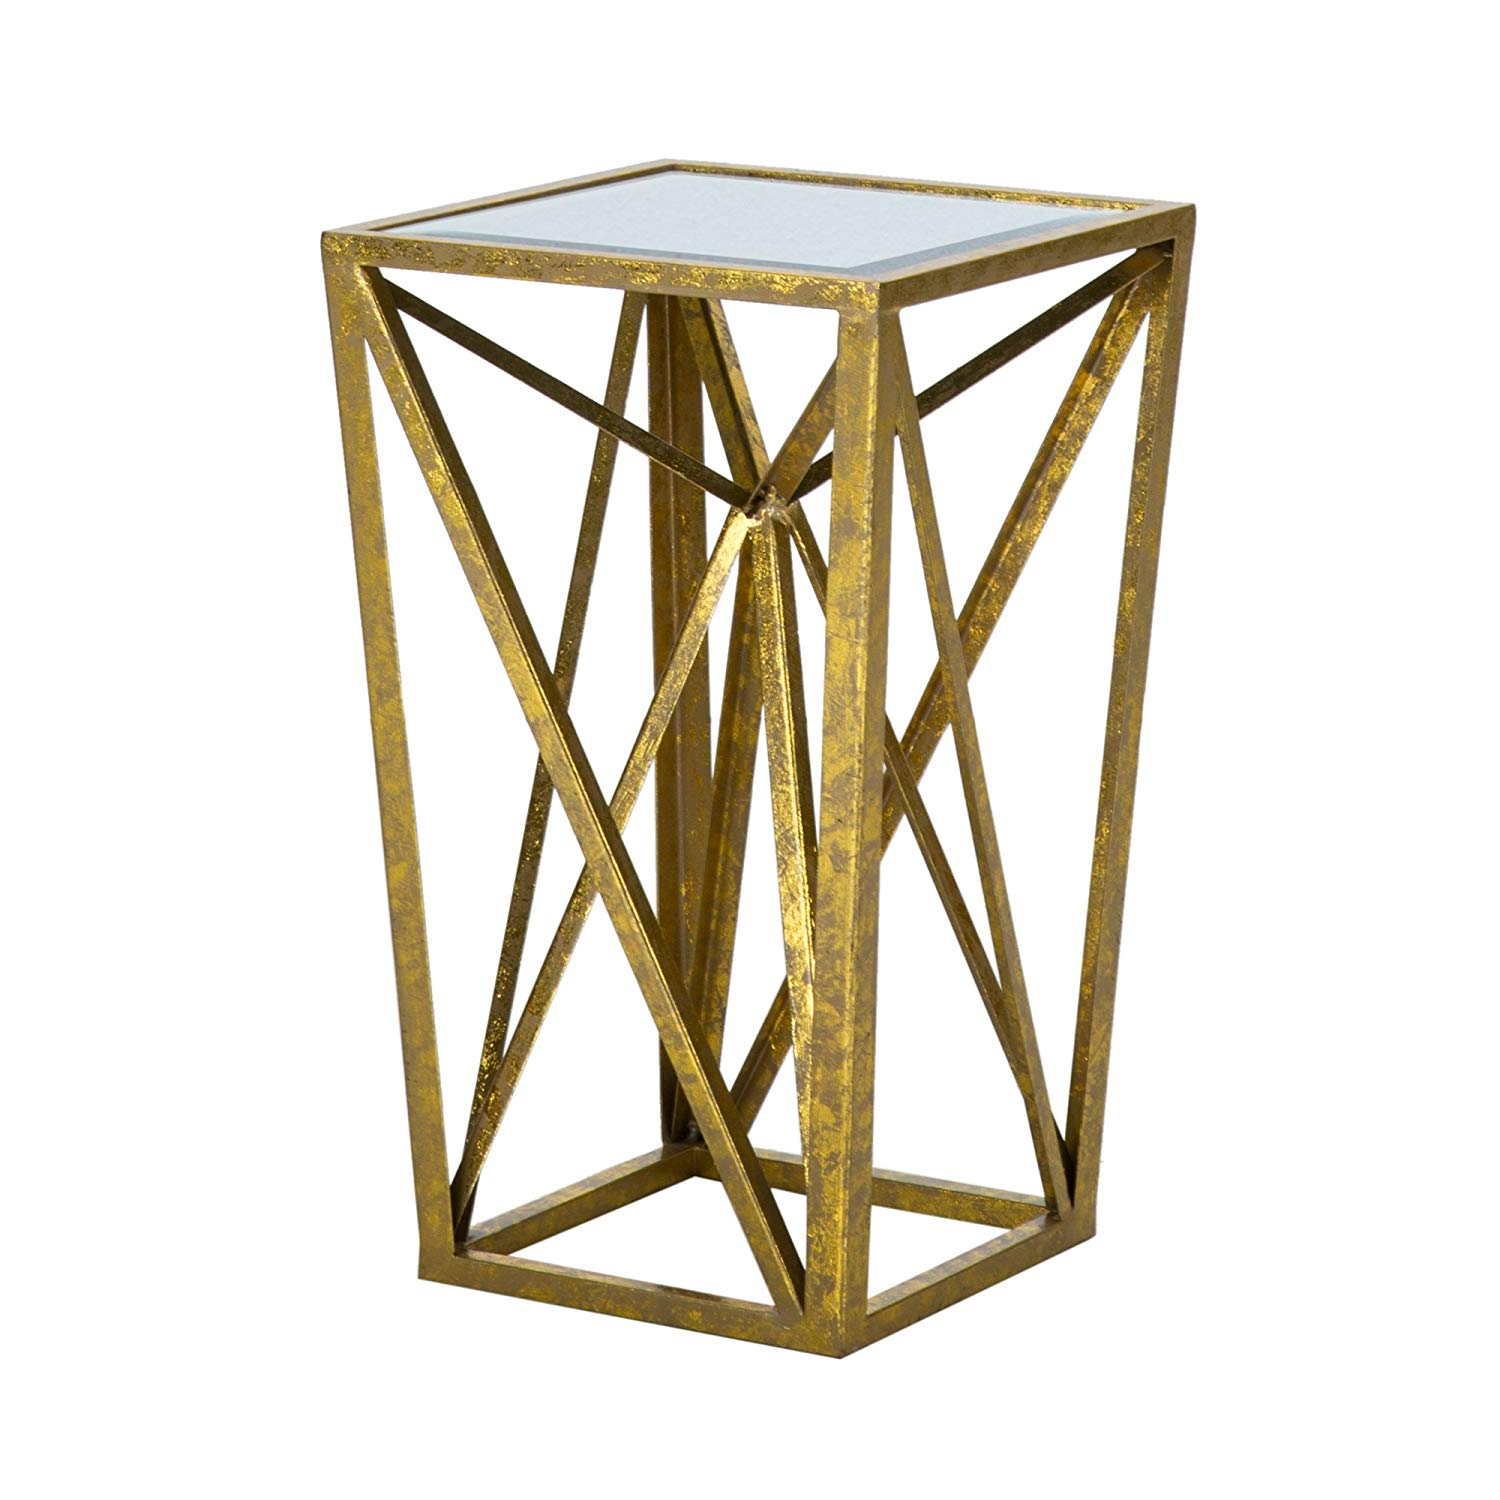 madison park zee accent tables mirror glass metal unique end side table gold angular design modern style piece top hollow round currey lighting coffee blue nesting narrow bedside